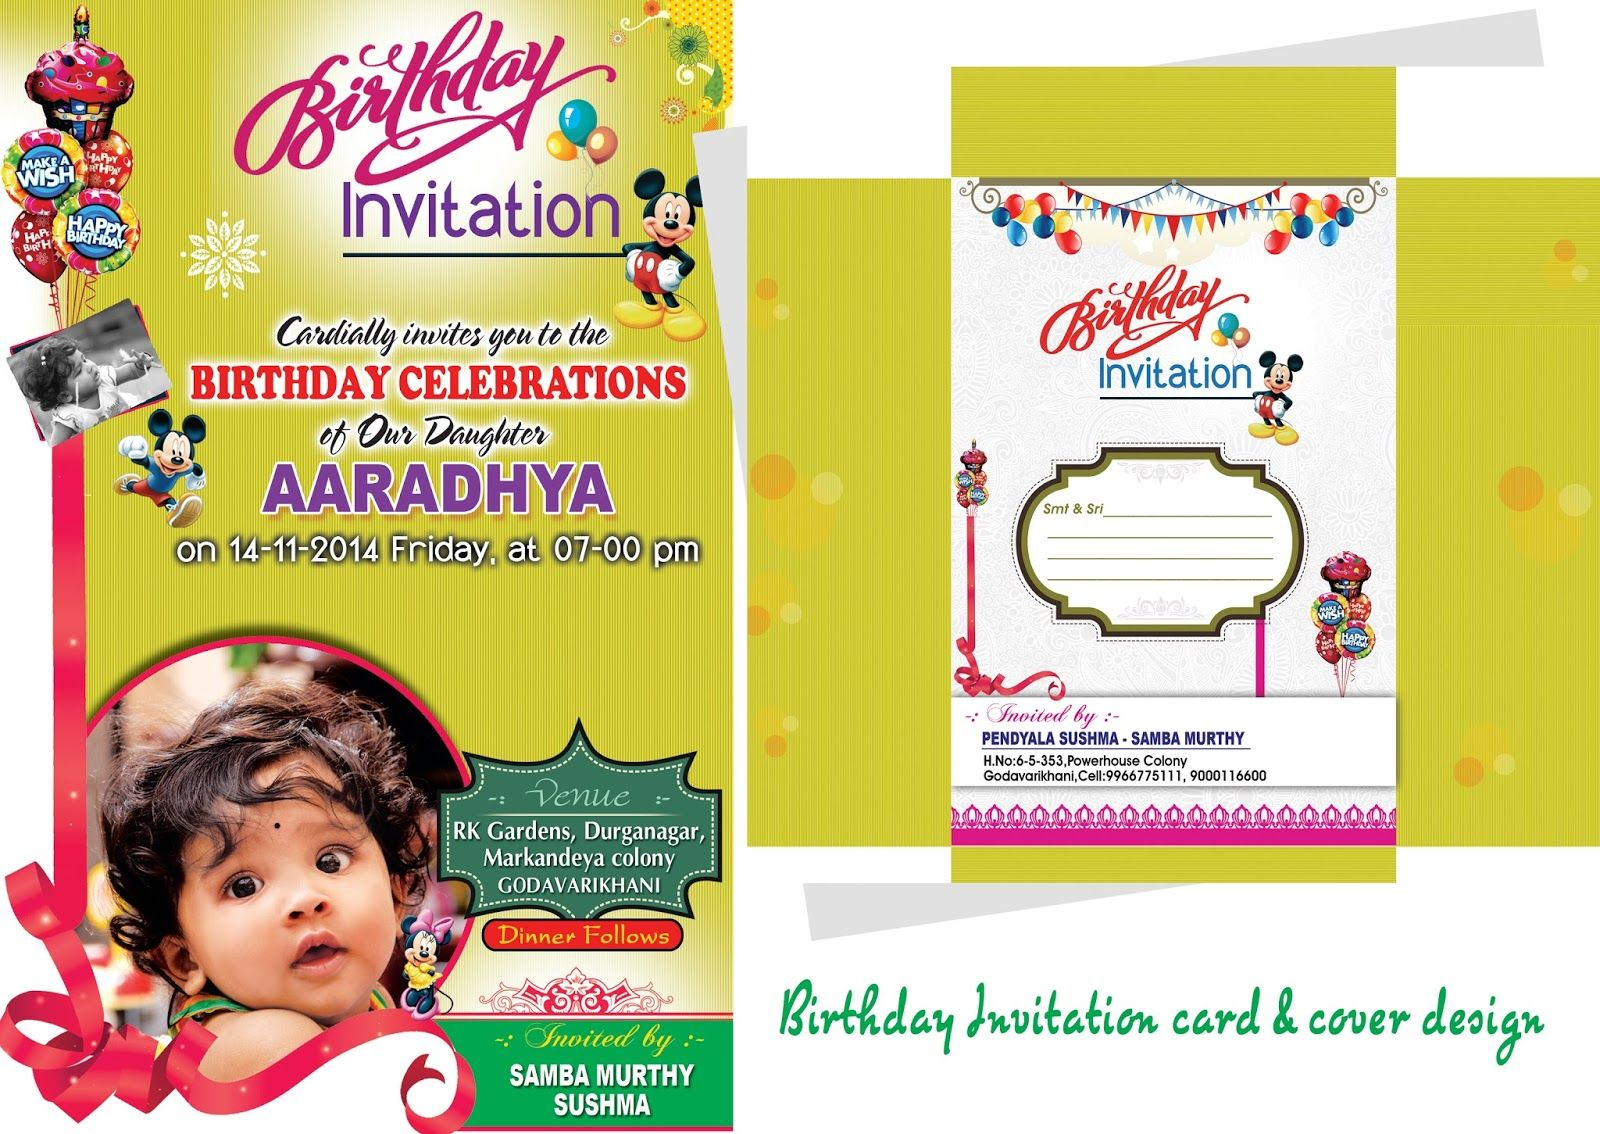 Birthday invitation card psd template free birthday designs birthday invitation card psd template free filmwisefo Gallery